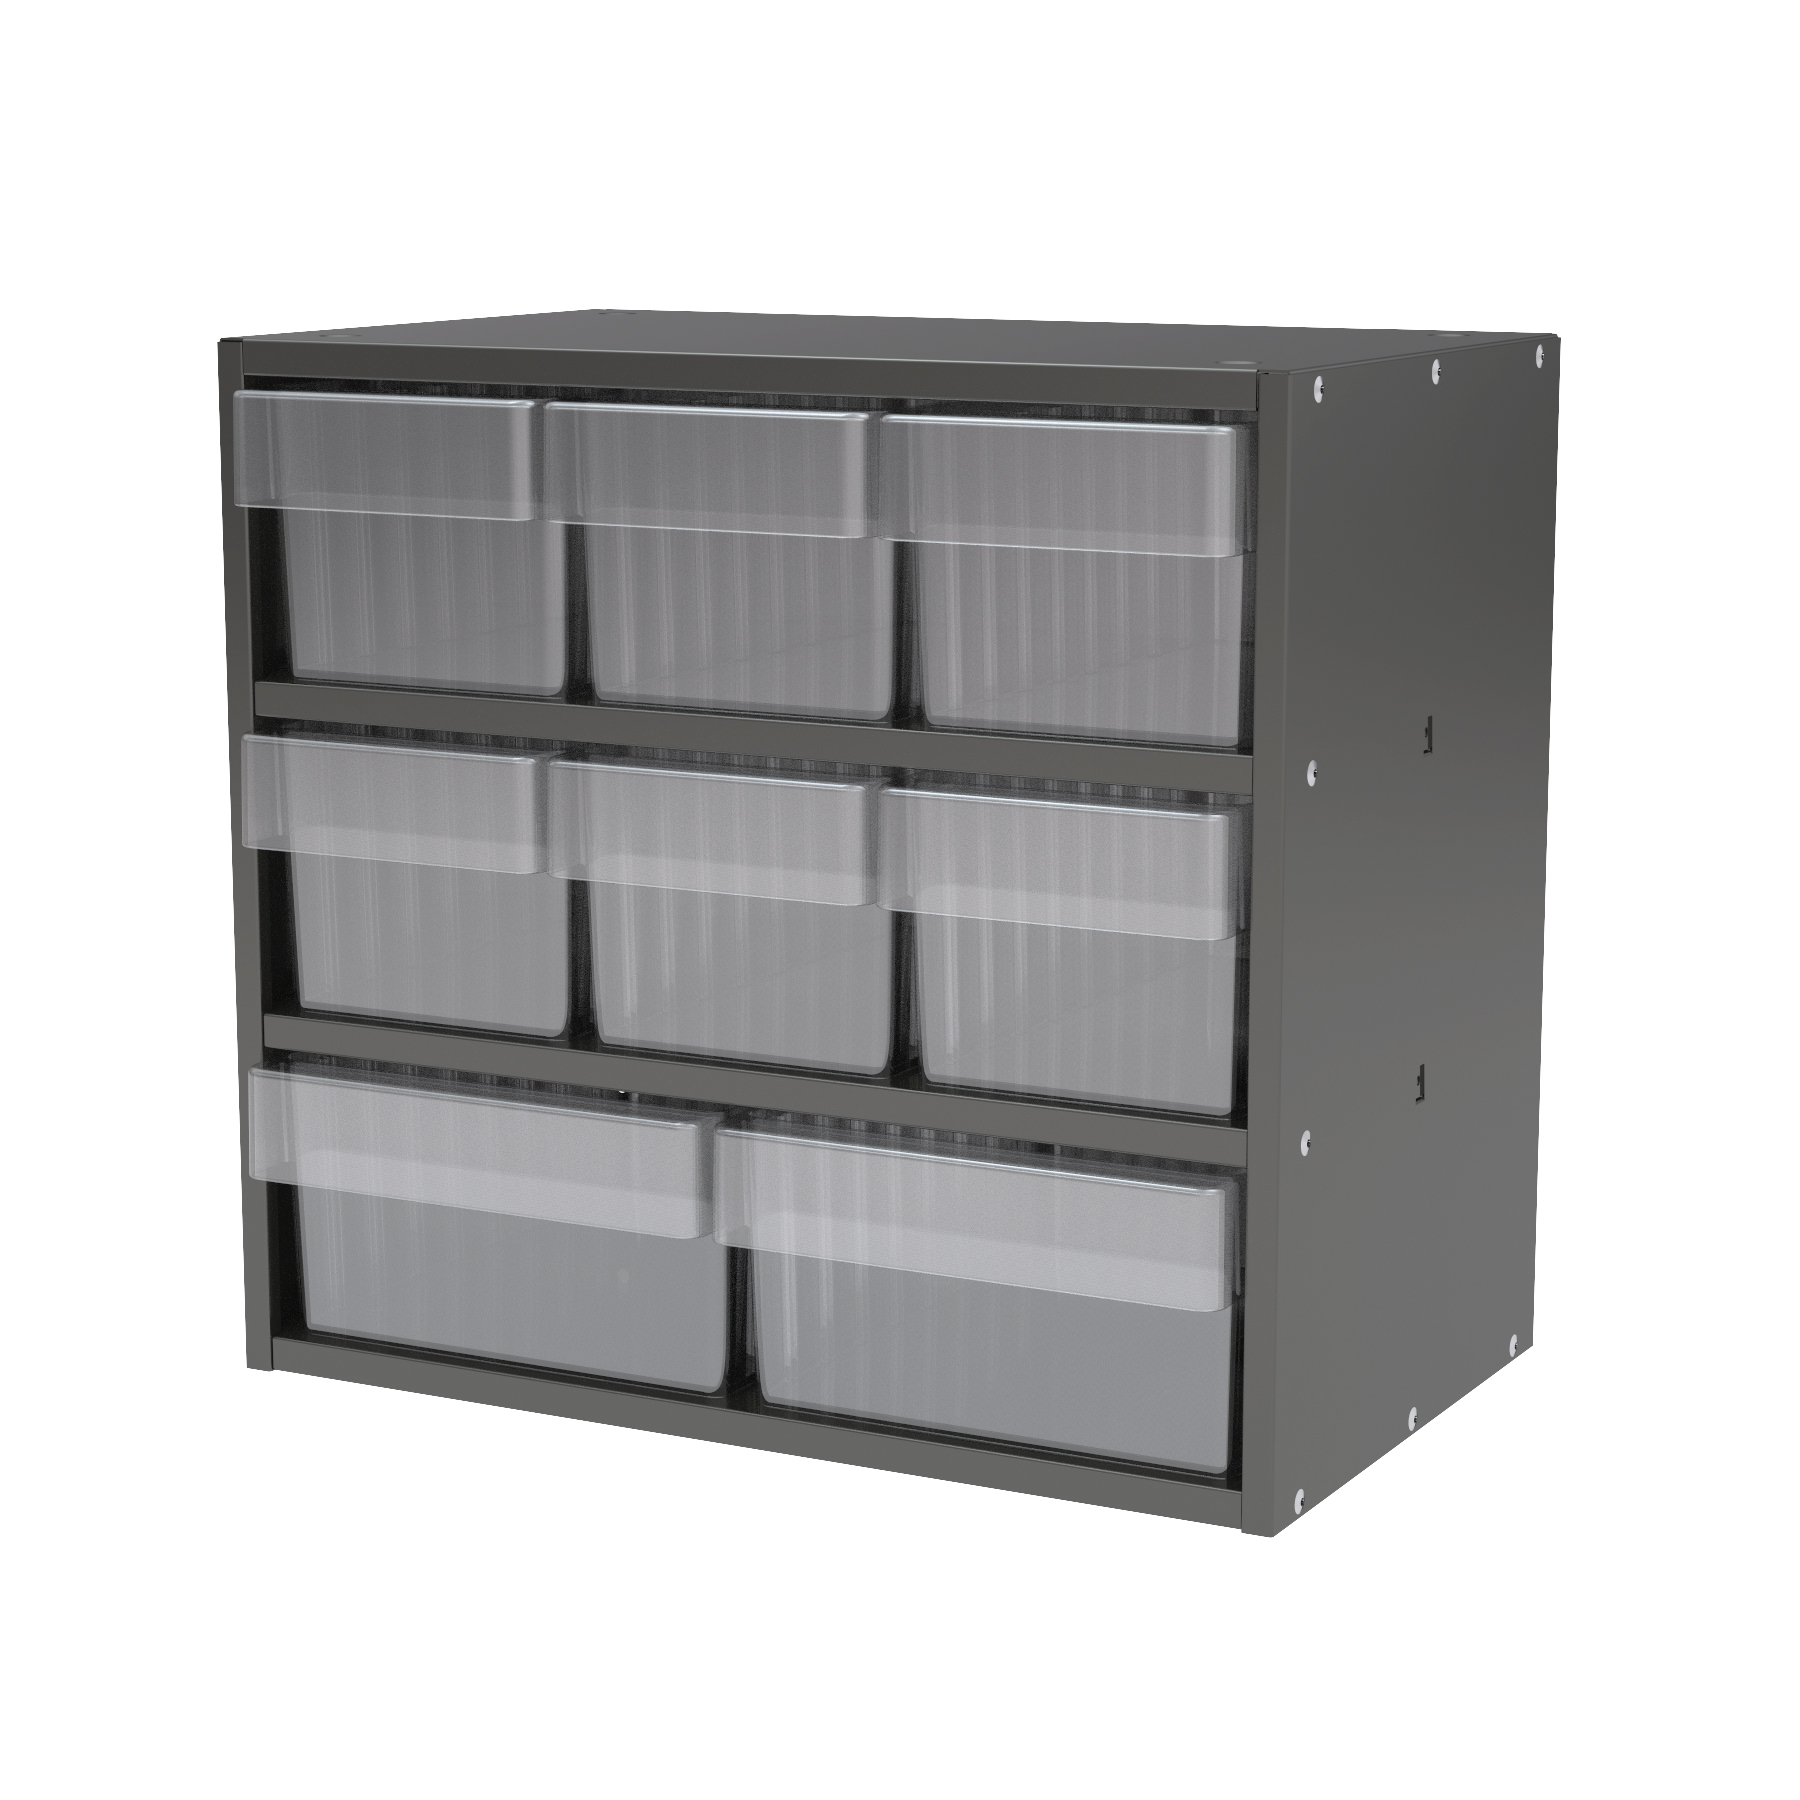 Item DISCONTINUED by Manufacturer.  Modular Cabinet, 18x11x16, 8 Drawers, Gray/Clear (AD1811CASTCRY).  This item sold in carton quantities of 1.